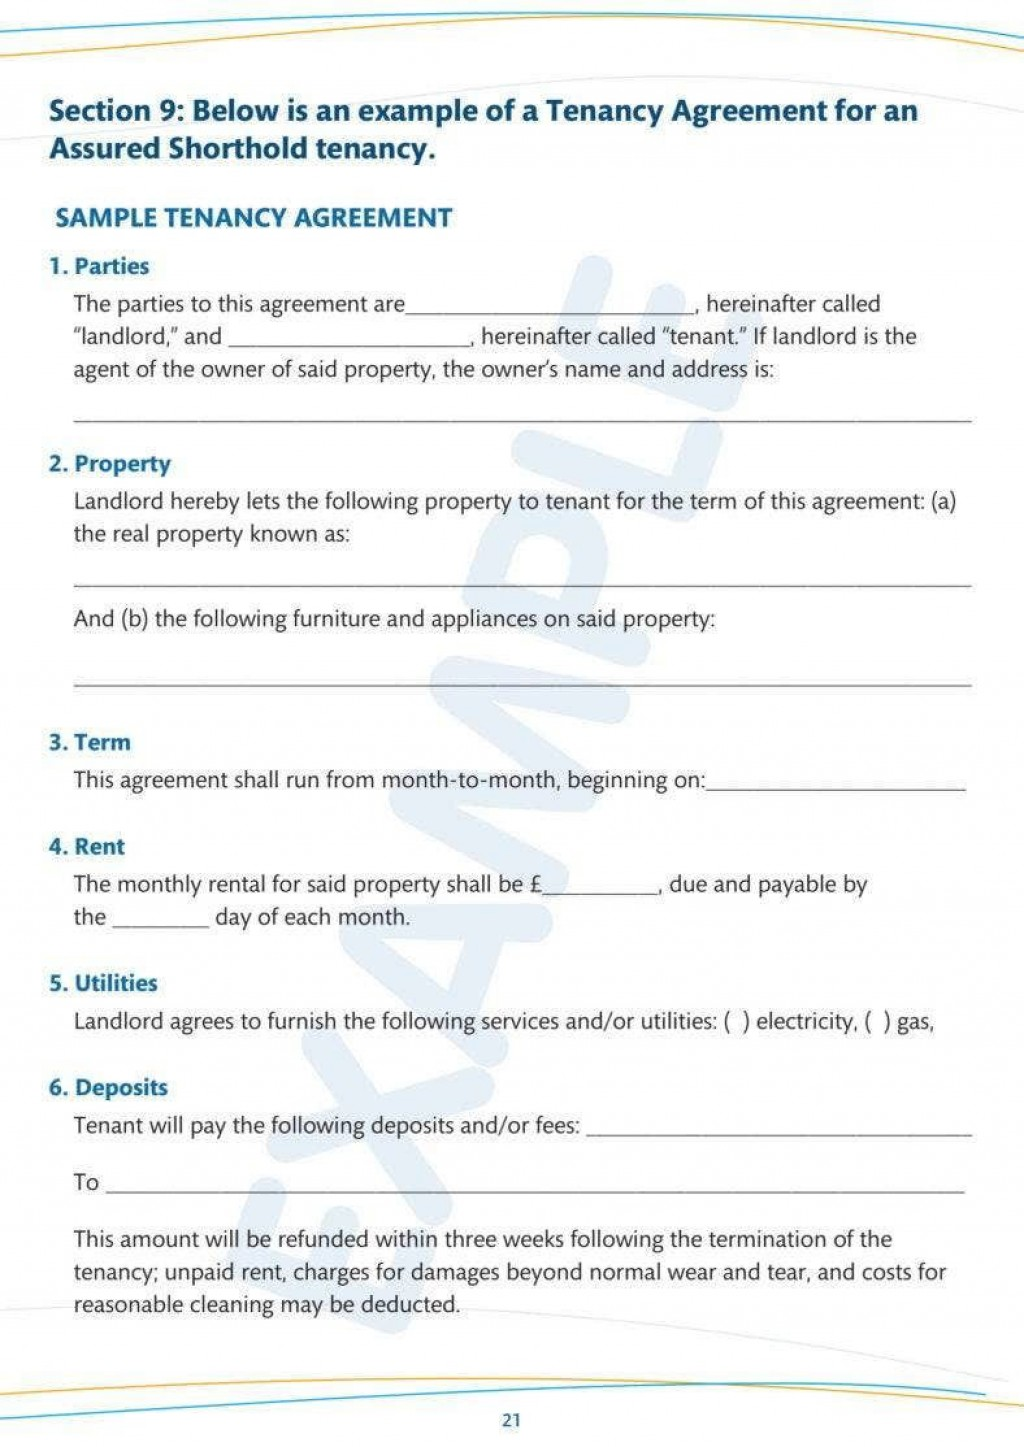 007 Amazing Tenancy Agreement Template Word Free High Definition  Uk 2020 Rental Doc LeaseLarge